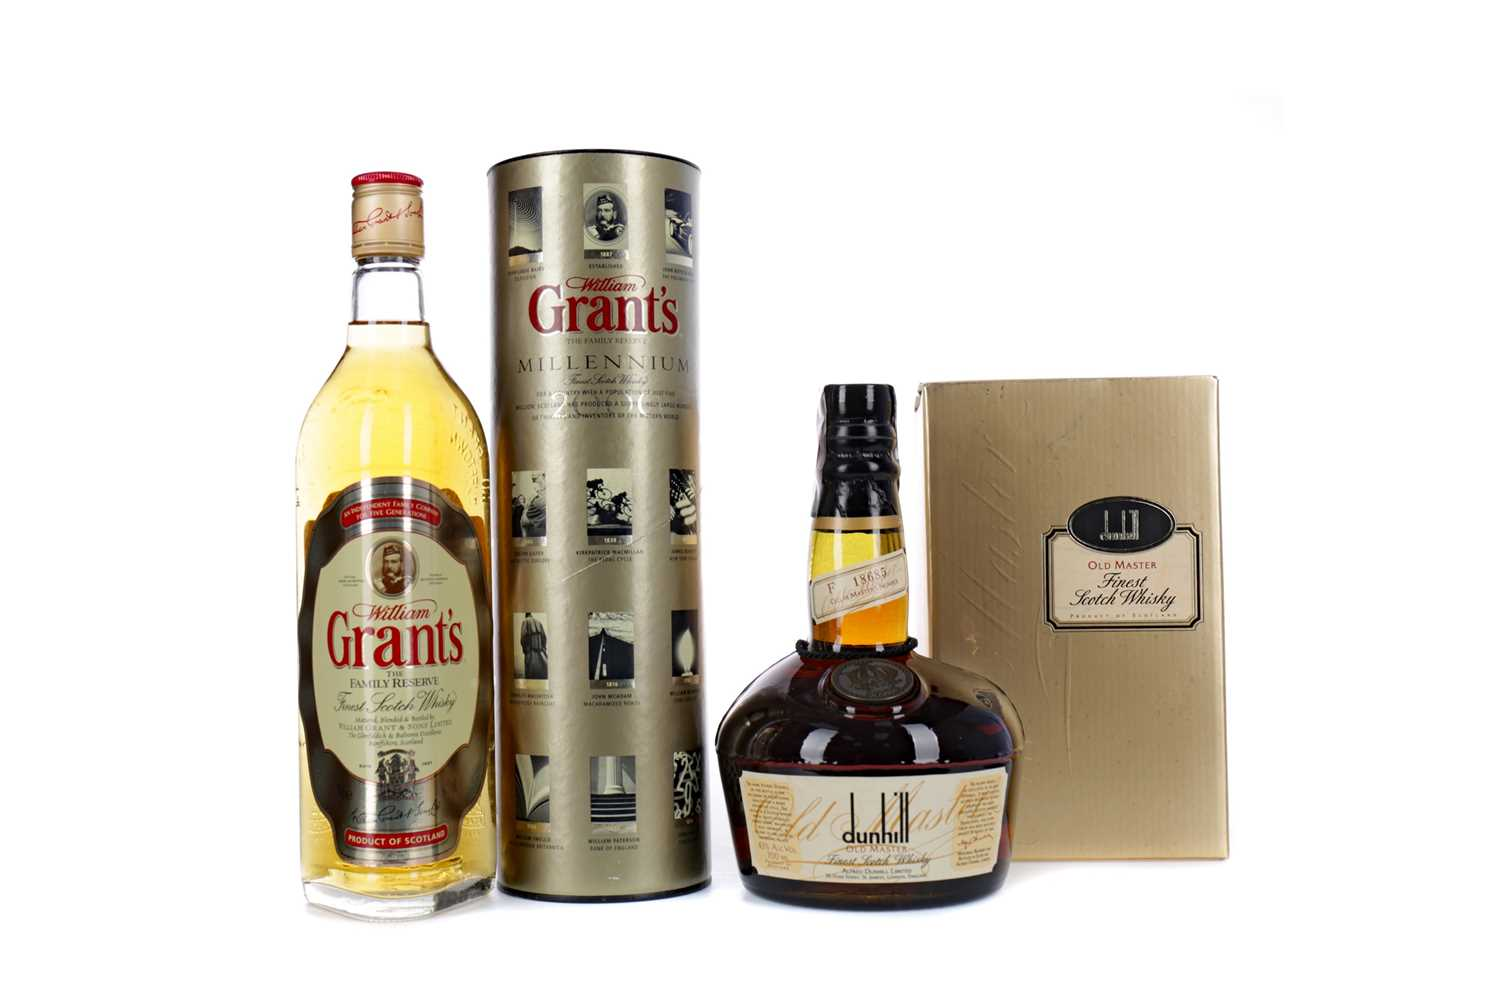 Lot 81 - DUNHILL OLD MASTER AND GRANT'S FAMILY RESERVE